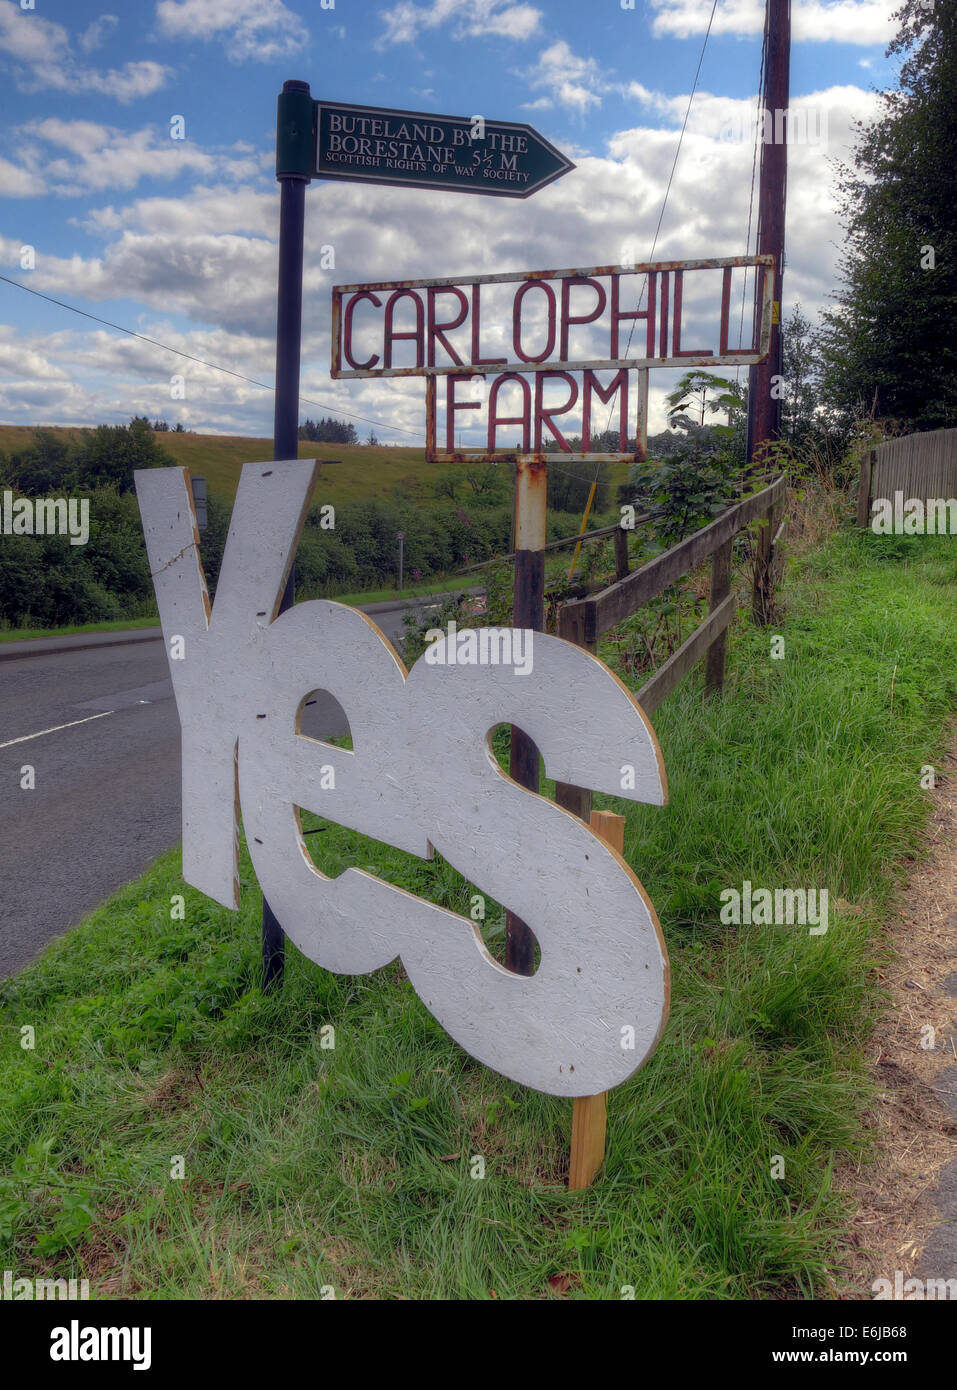 Yes to Scottish independence sign at Carlophill farm, Carlops, Scottish Borders, Scotland September 2014 - Stock Image